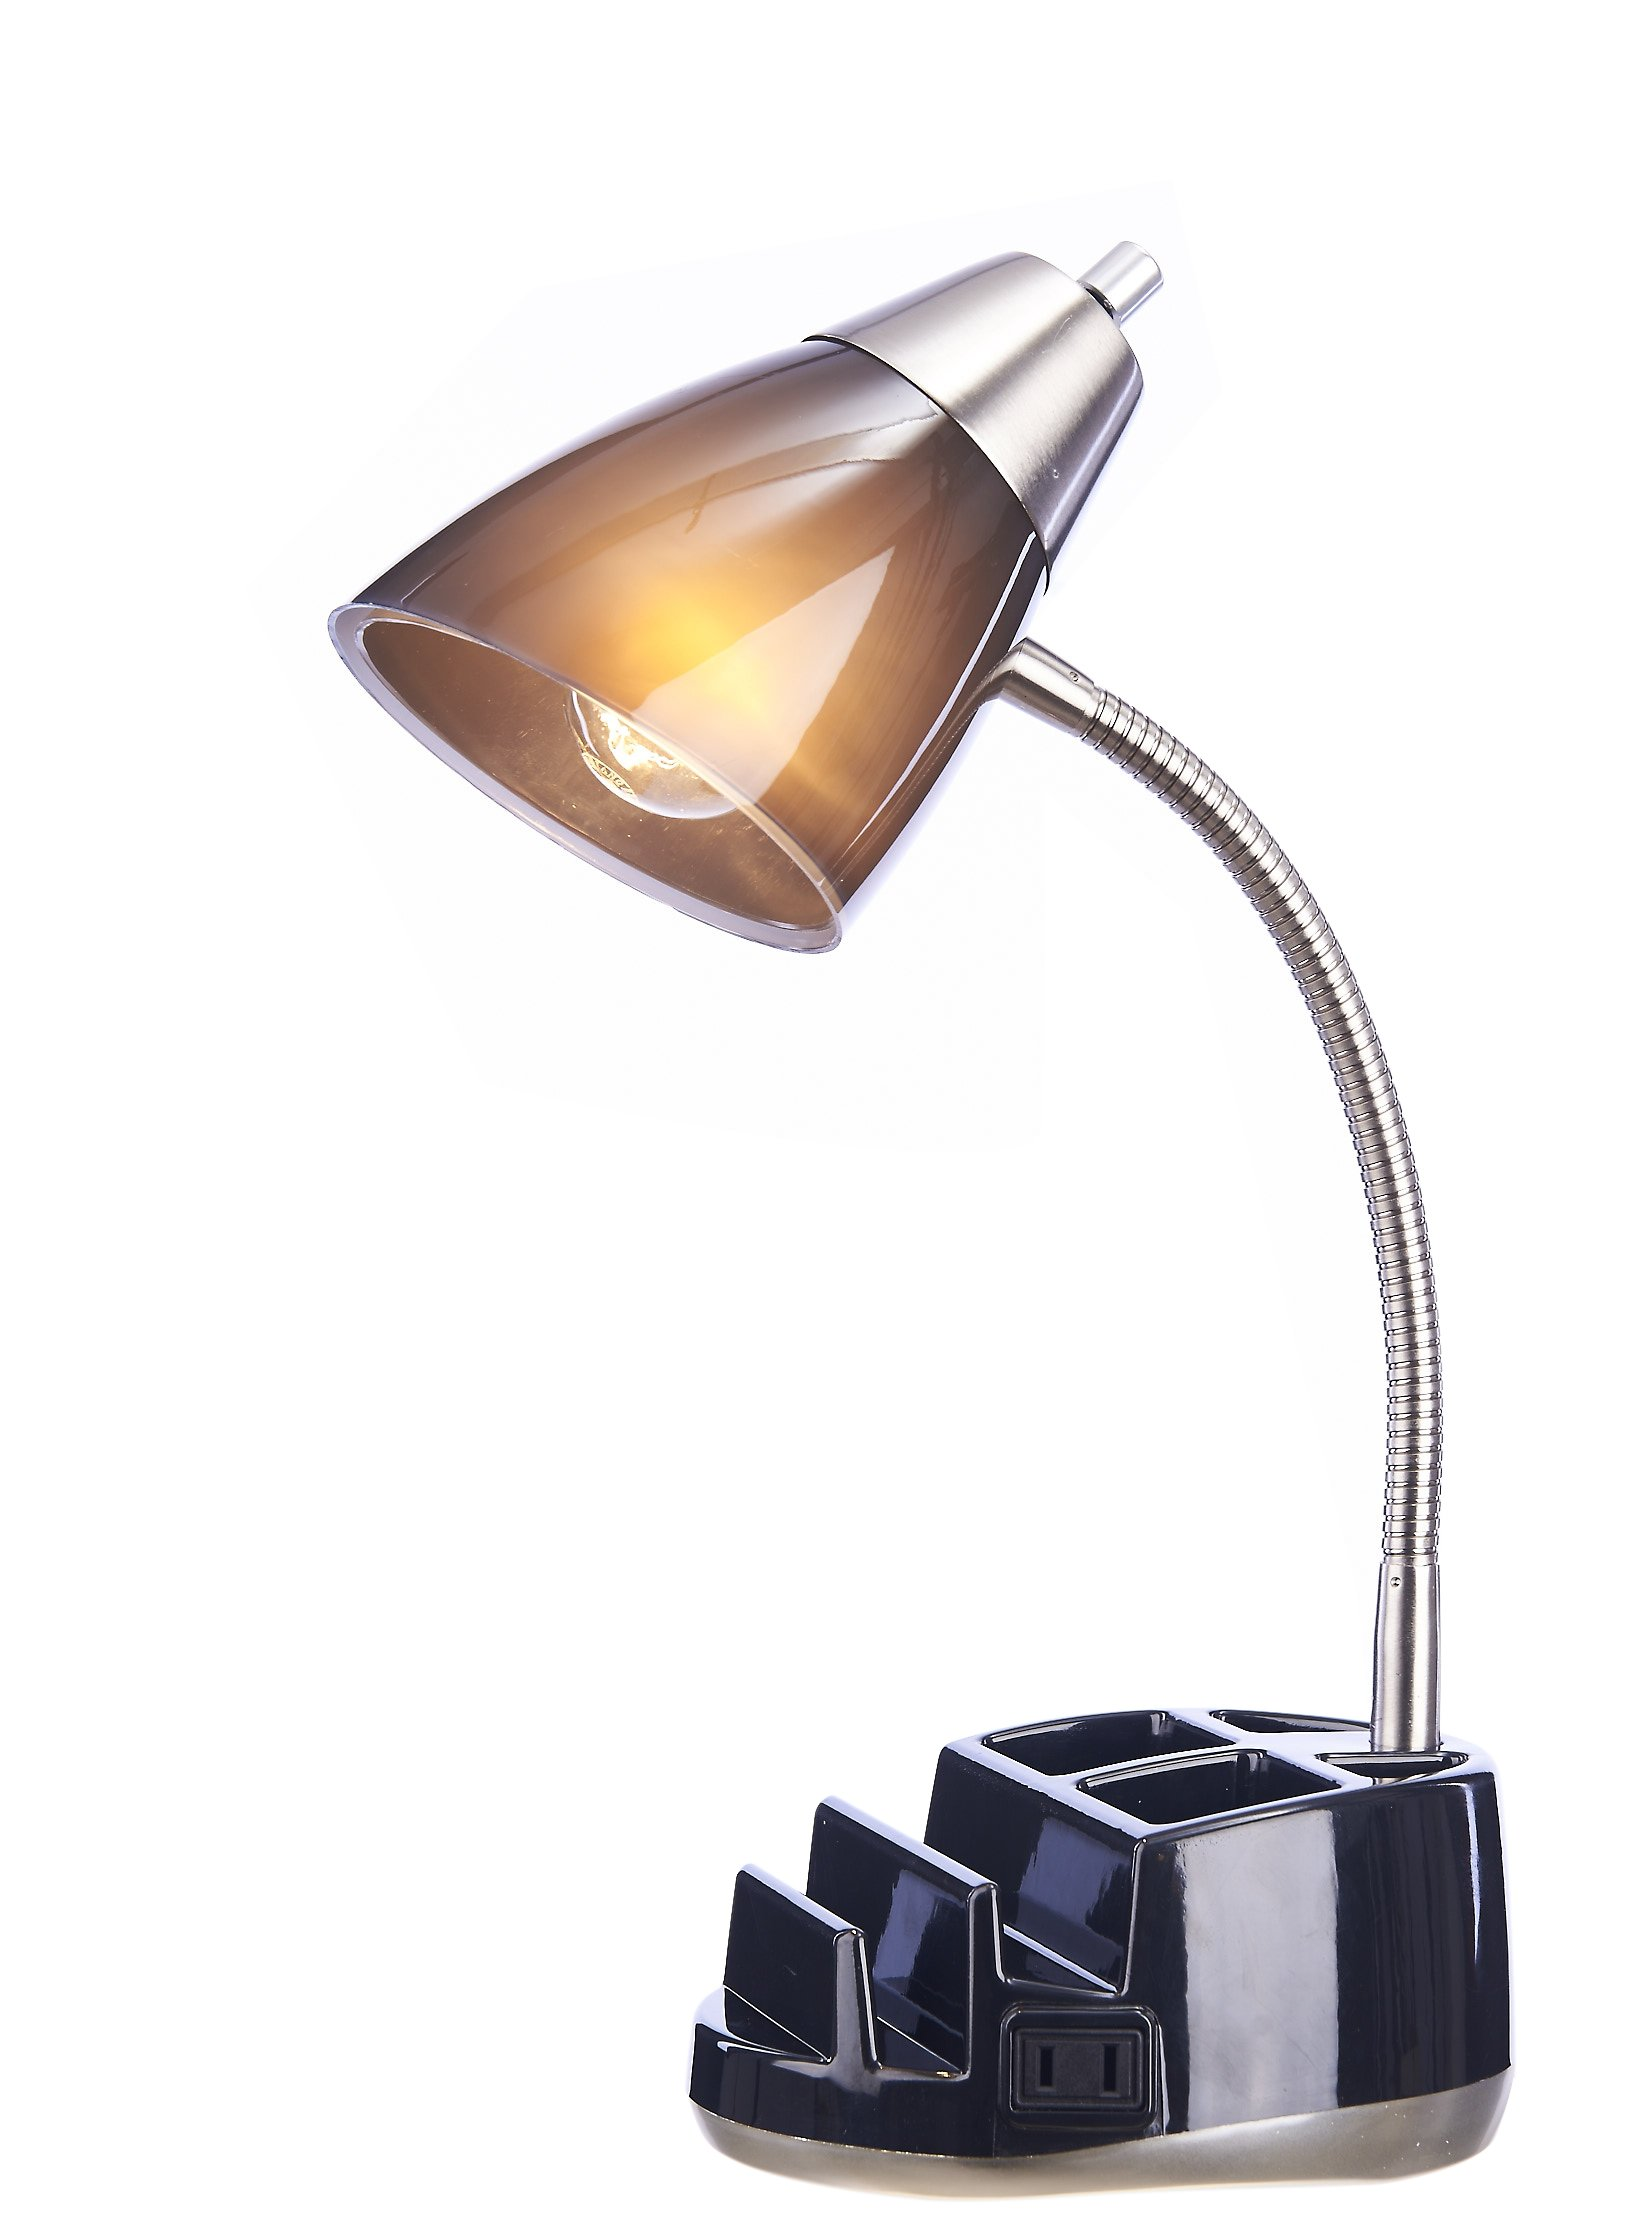 Catalina Lighting 20106-007 Greystone Clear Desk Lamp in a Brushed Steel Shade with Power Outlet, Organizer, Black